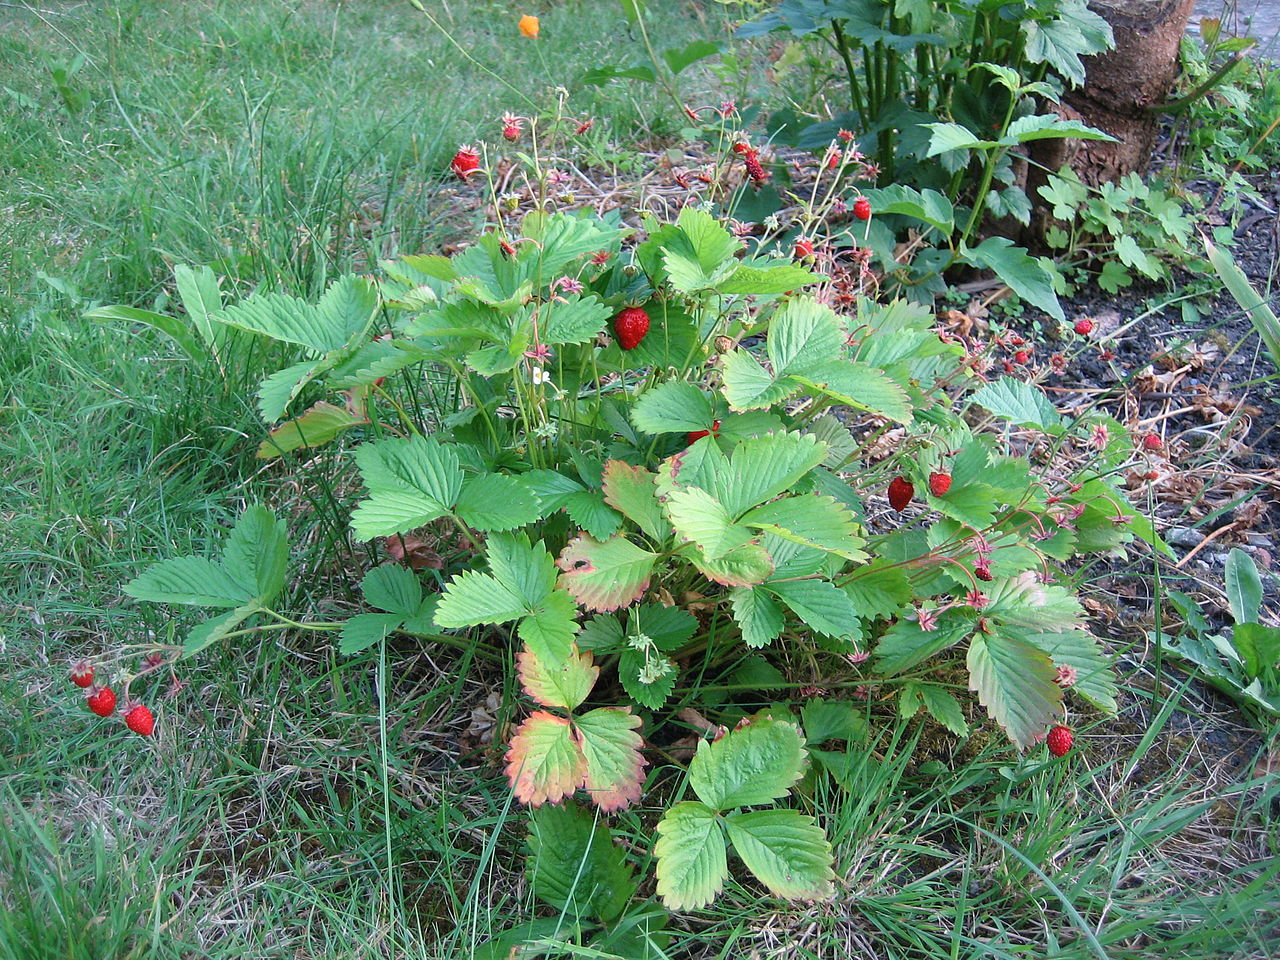 File:Whole wild strawberry plant UK 2006.JPG - Wikimedia Commons